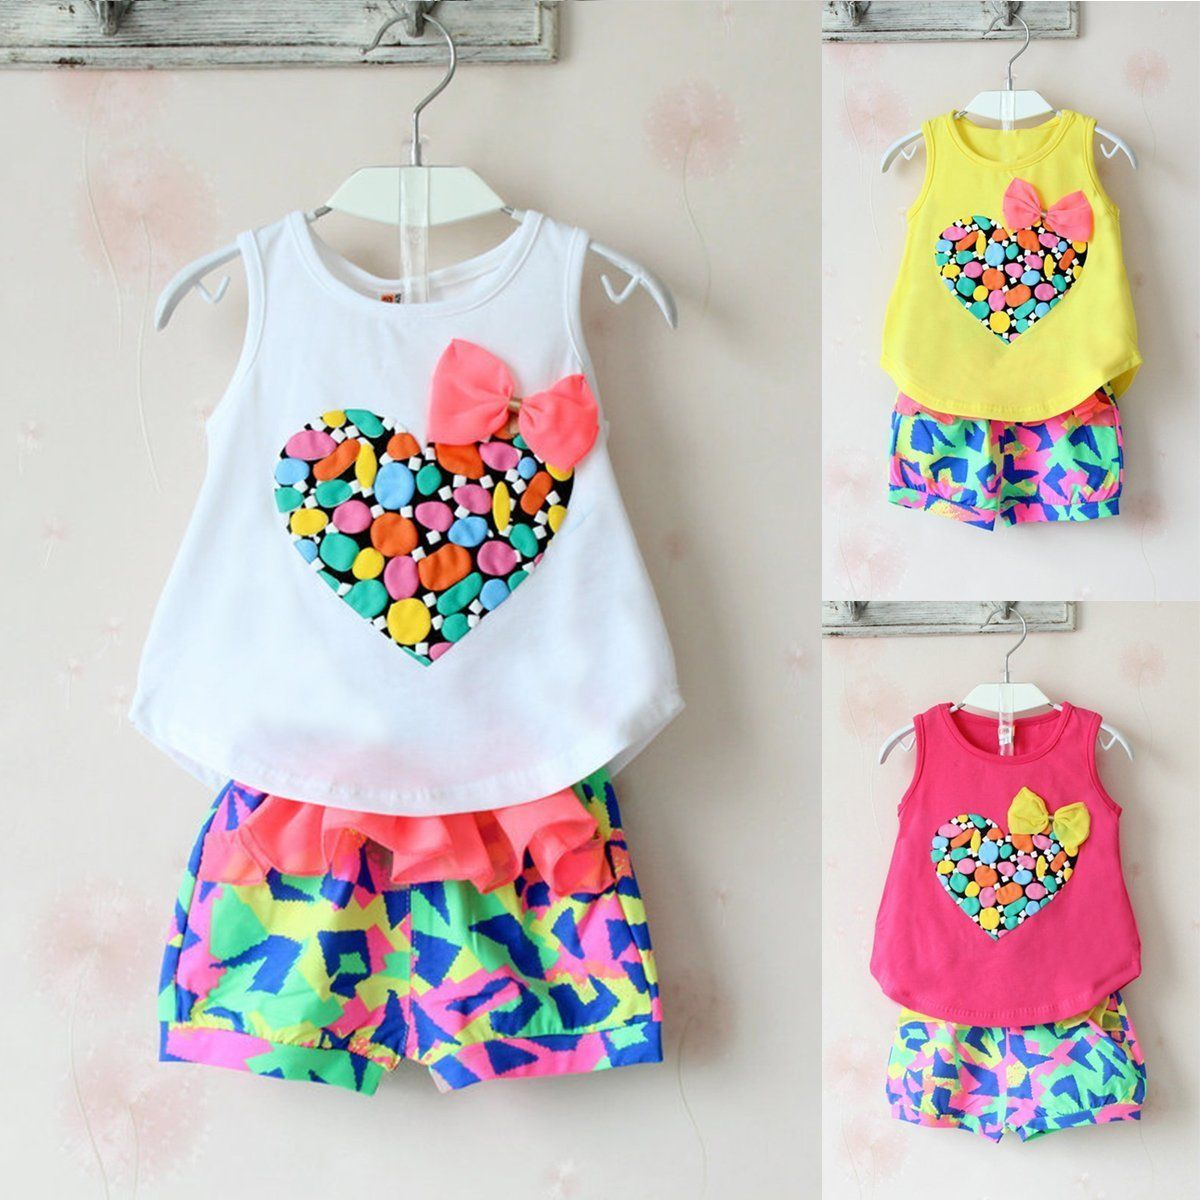 0e76c2019fa3 2Pcs Toddler Kids Baby Girls Summer Clothes T-Shirt Tops+Shorts Pants  Outfit Set #ebay #Fashion